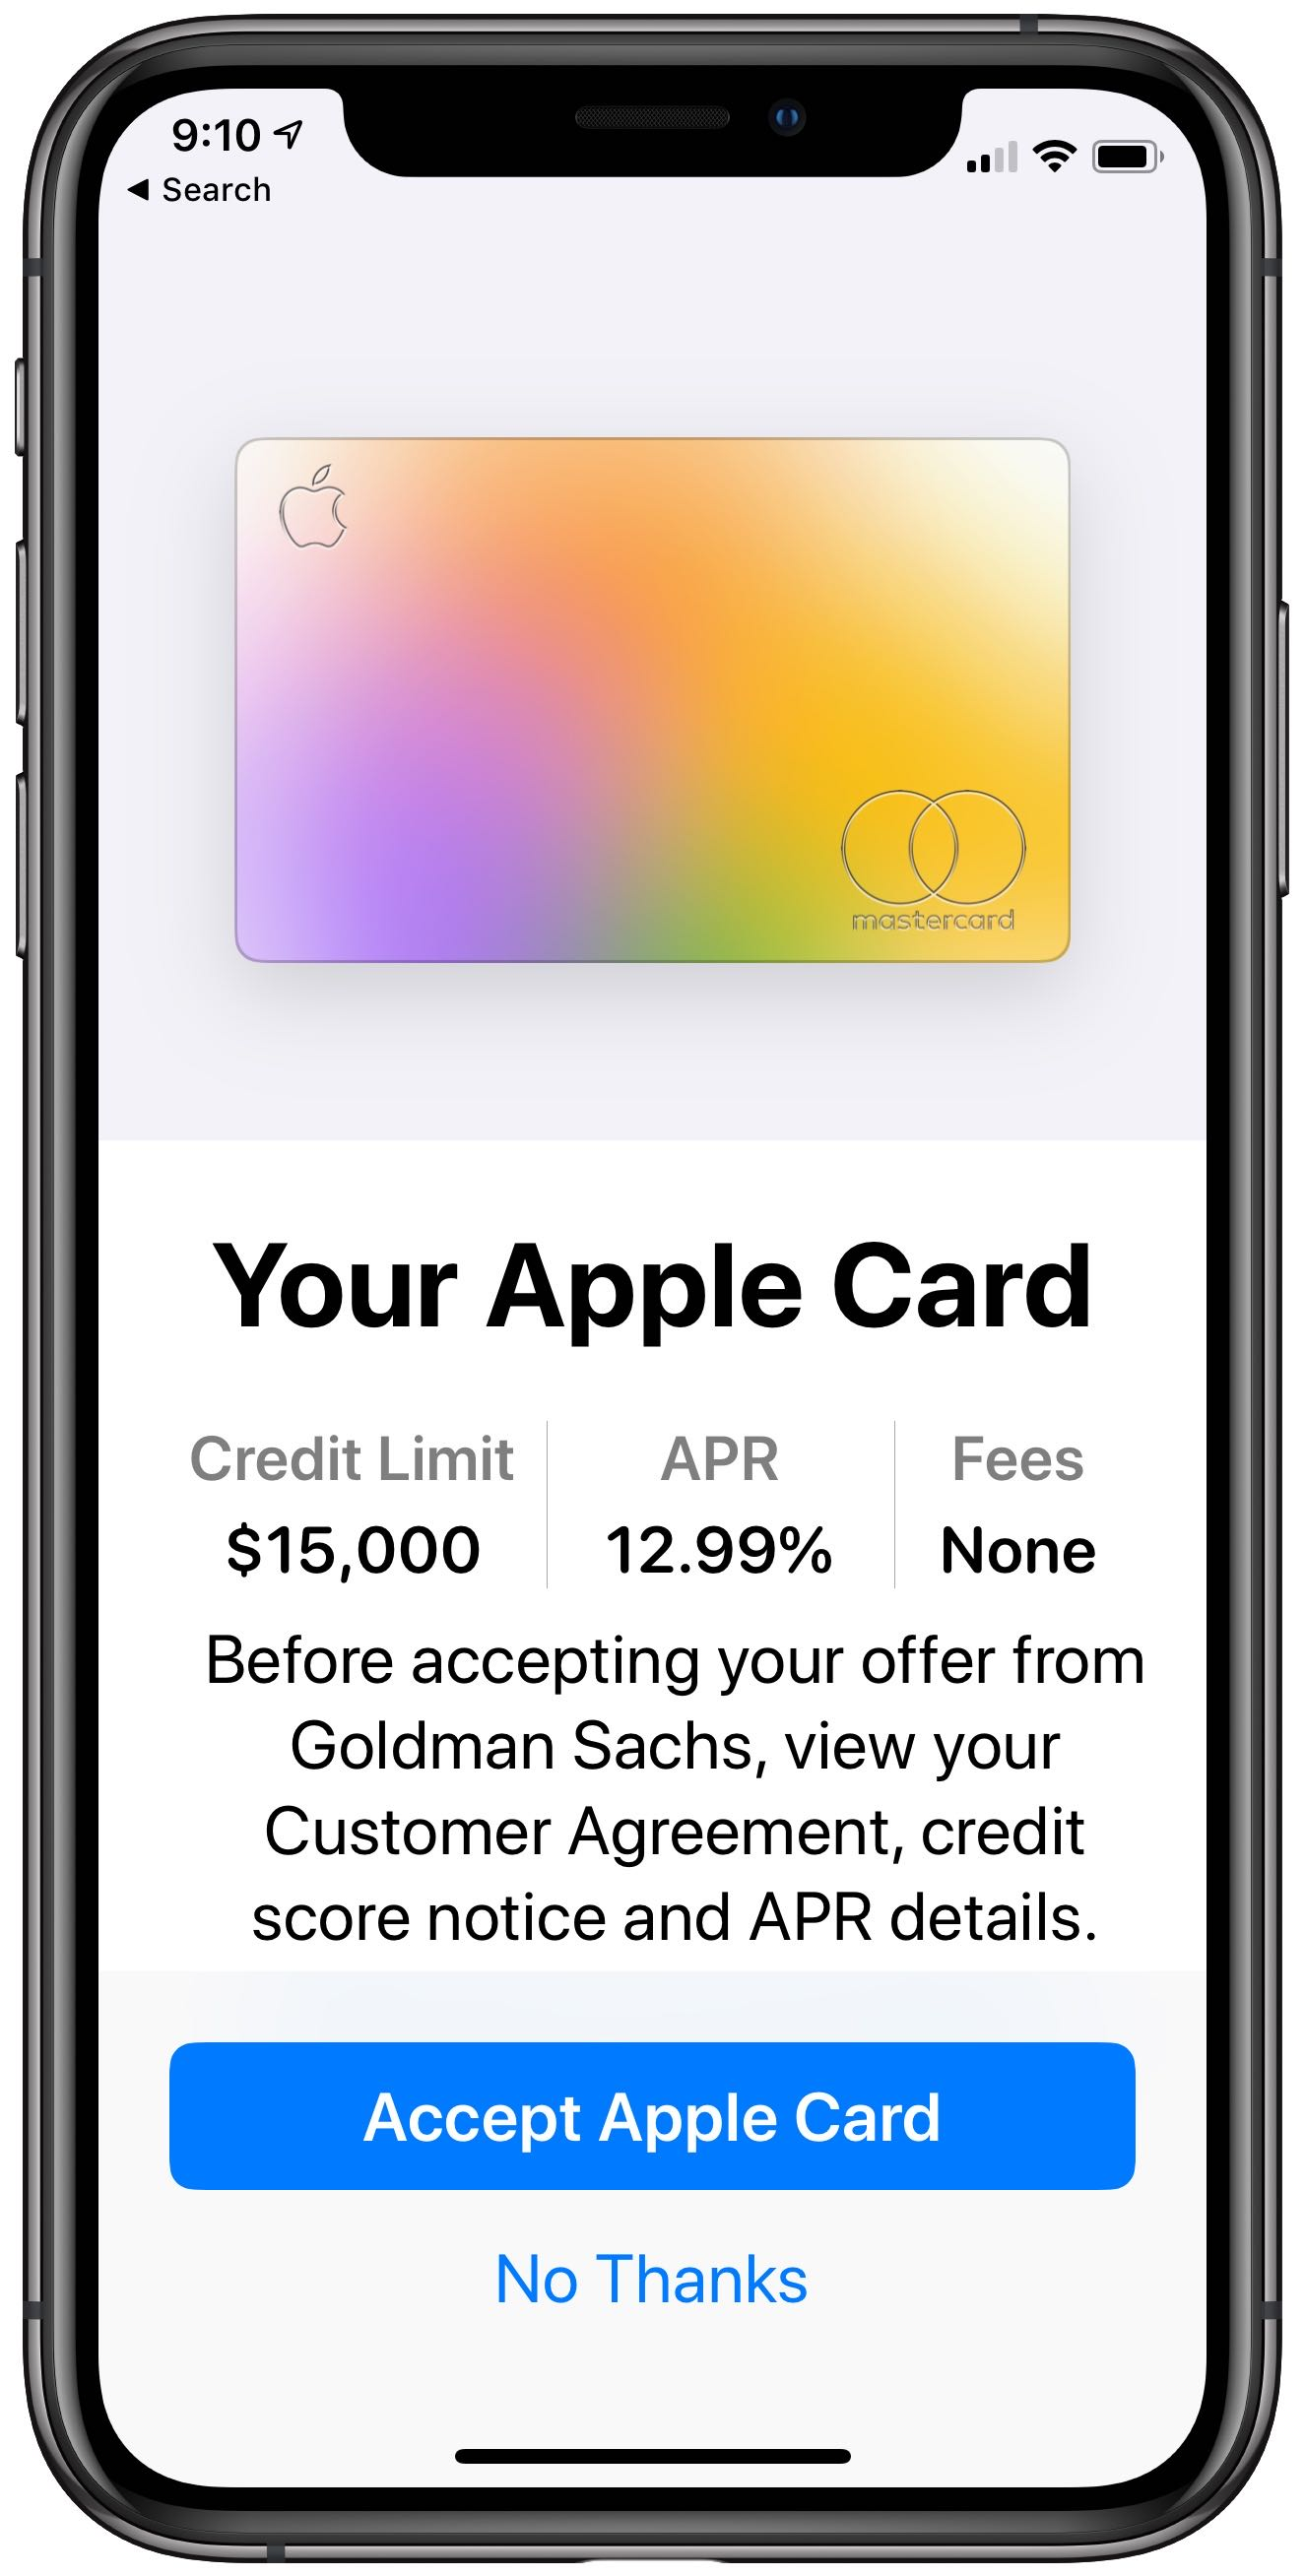 Apple Card -- the credit card from Apple -- is now available